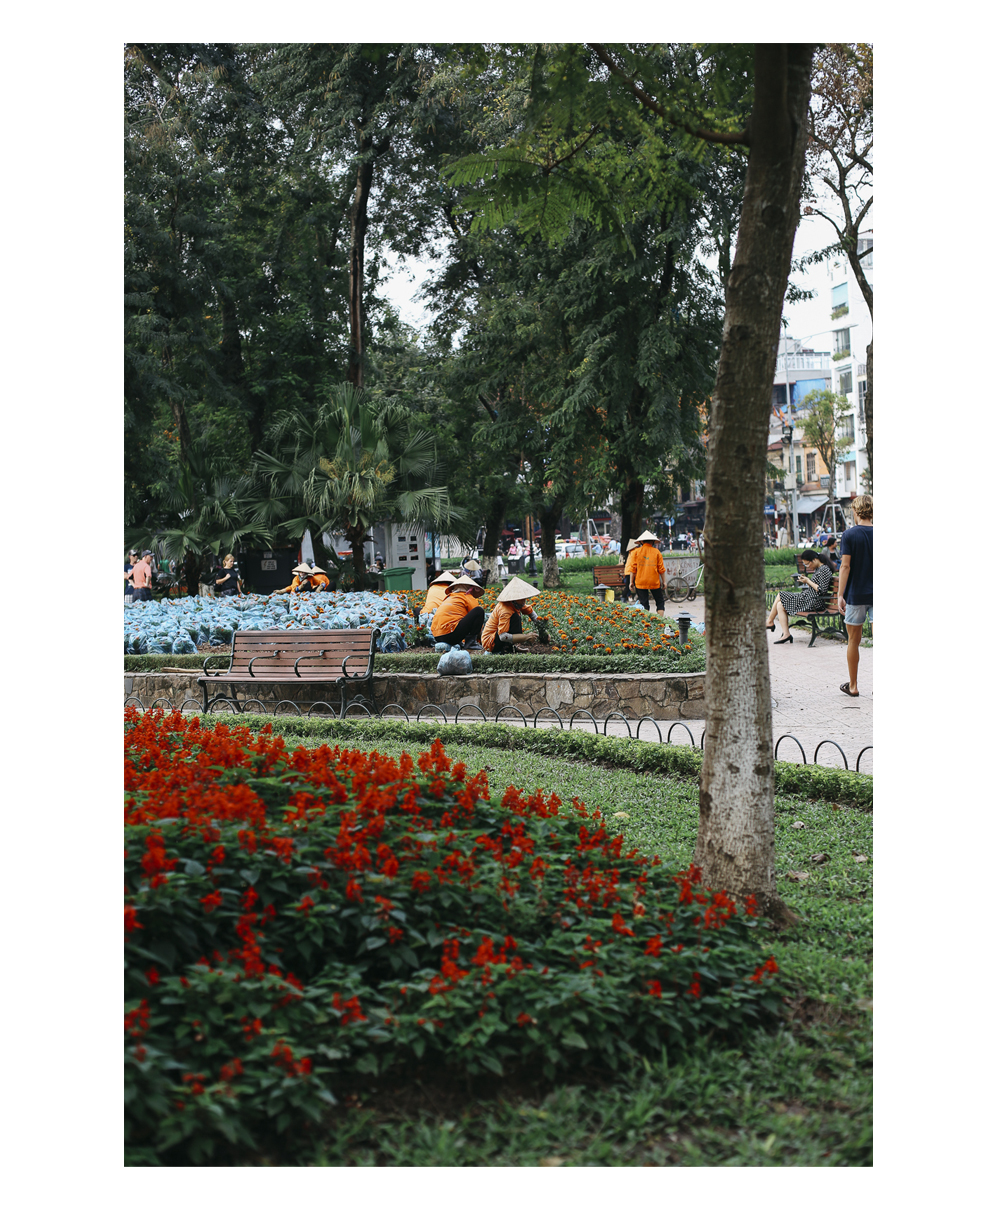 Hanoi_6, Hanoi, Vietnam, Photo and Travel Diary by The Curly Head, Photography by Amelie Niederbuchner,